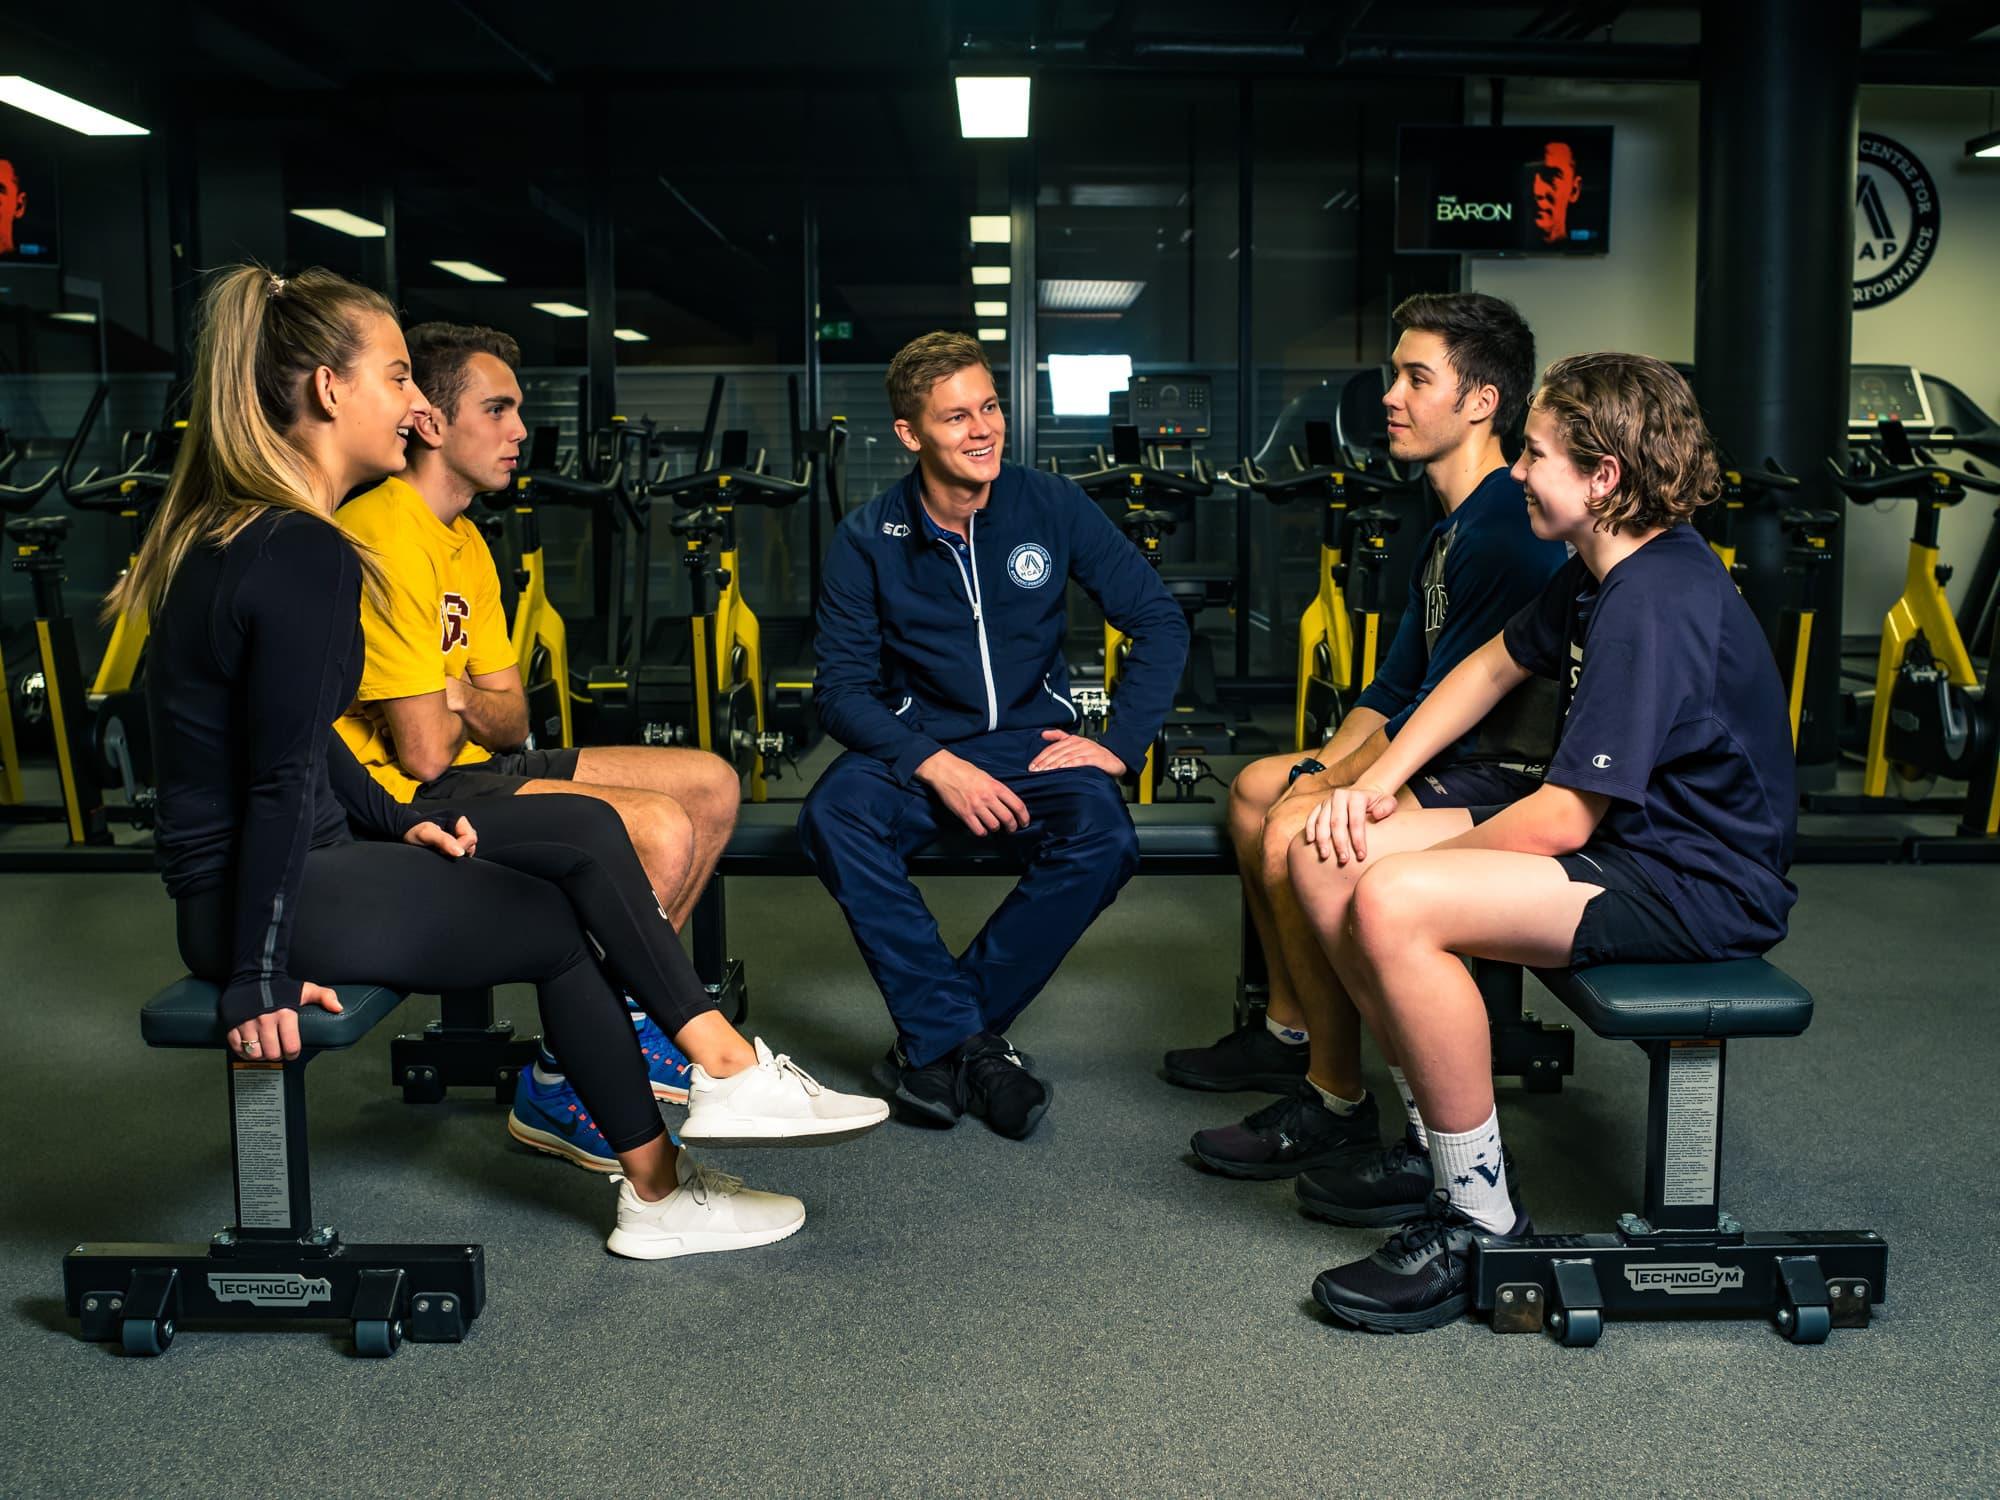 Sports Photography Melbourne Centre Athletic Performance guidance